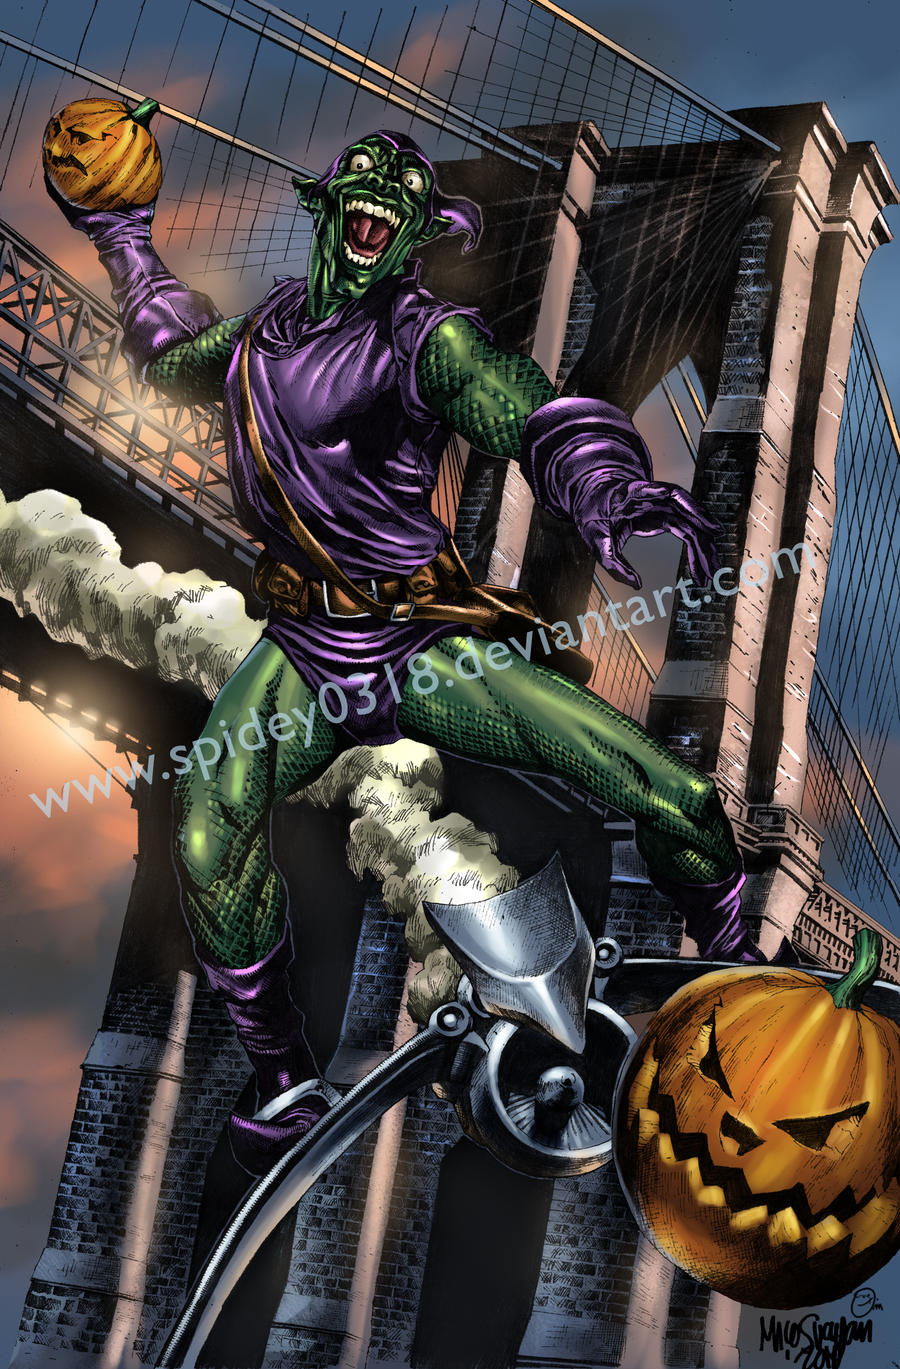 Green Goblin by spidey0318